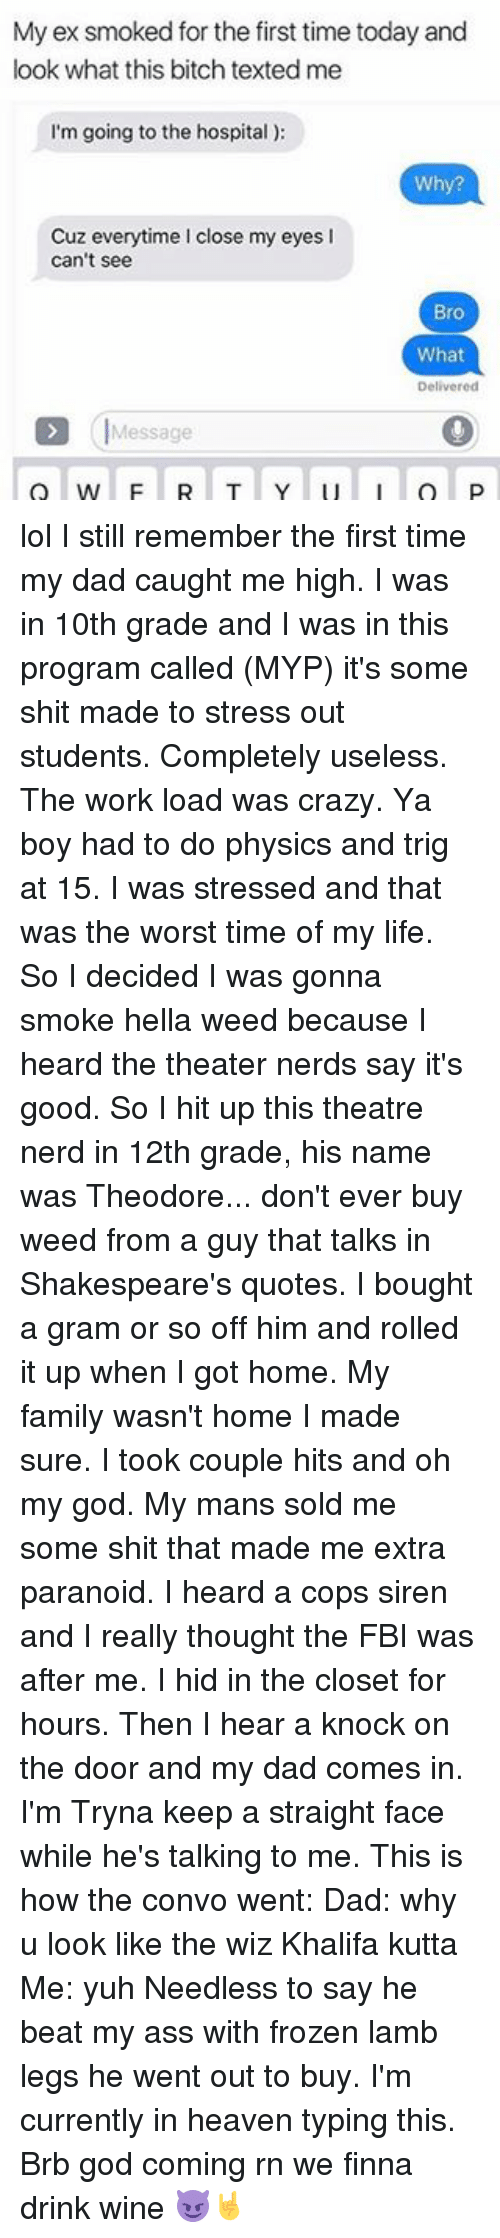 Sirening: My ex smoked for the first time today and  look what this bitch texted me  I'm going to the hospital  Why?  Cuz everytime close my eyes l  can't see  Bro  What  Delivered  Message lol I still remember the first time my dad caught me high. I was in 10th grade and I was in this program called (MYP) it's some shit made to stress out students. Completely useless. The work load was crazy. Ya boy had to do physics and trig at 15. I was stressed and that was the worst time of my life. So I decided I was gonna smoke hella weed because I heard the theater nerds say it's good. So I hit up this theatre nerd in 12th grade, his name was Theodore... don't ever buy weed from a guy that talks in Shakespeare's quotes. I bought a gram or so off him and rolled it up when I got home. My family wasn't home I made sure. I took couple hits and oh my god. My mans sold me some shit that made me extra paranoid. I heard a cops siren and I really thought the FBI was after me. I hid in the closet for hours. Then I hear a knock on the door and my dad comes in. I'm Tryna keep a straight face while he's talking to me. This is how the convo went: Dad: why u look like the wiz Khalifa kutta Me: yuh Needless to say he beat my ass with frozen lamb legs he went out to buy. I'm currently in heaven typing this. Brb god coming rn we finna drink wine 😈🤘